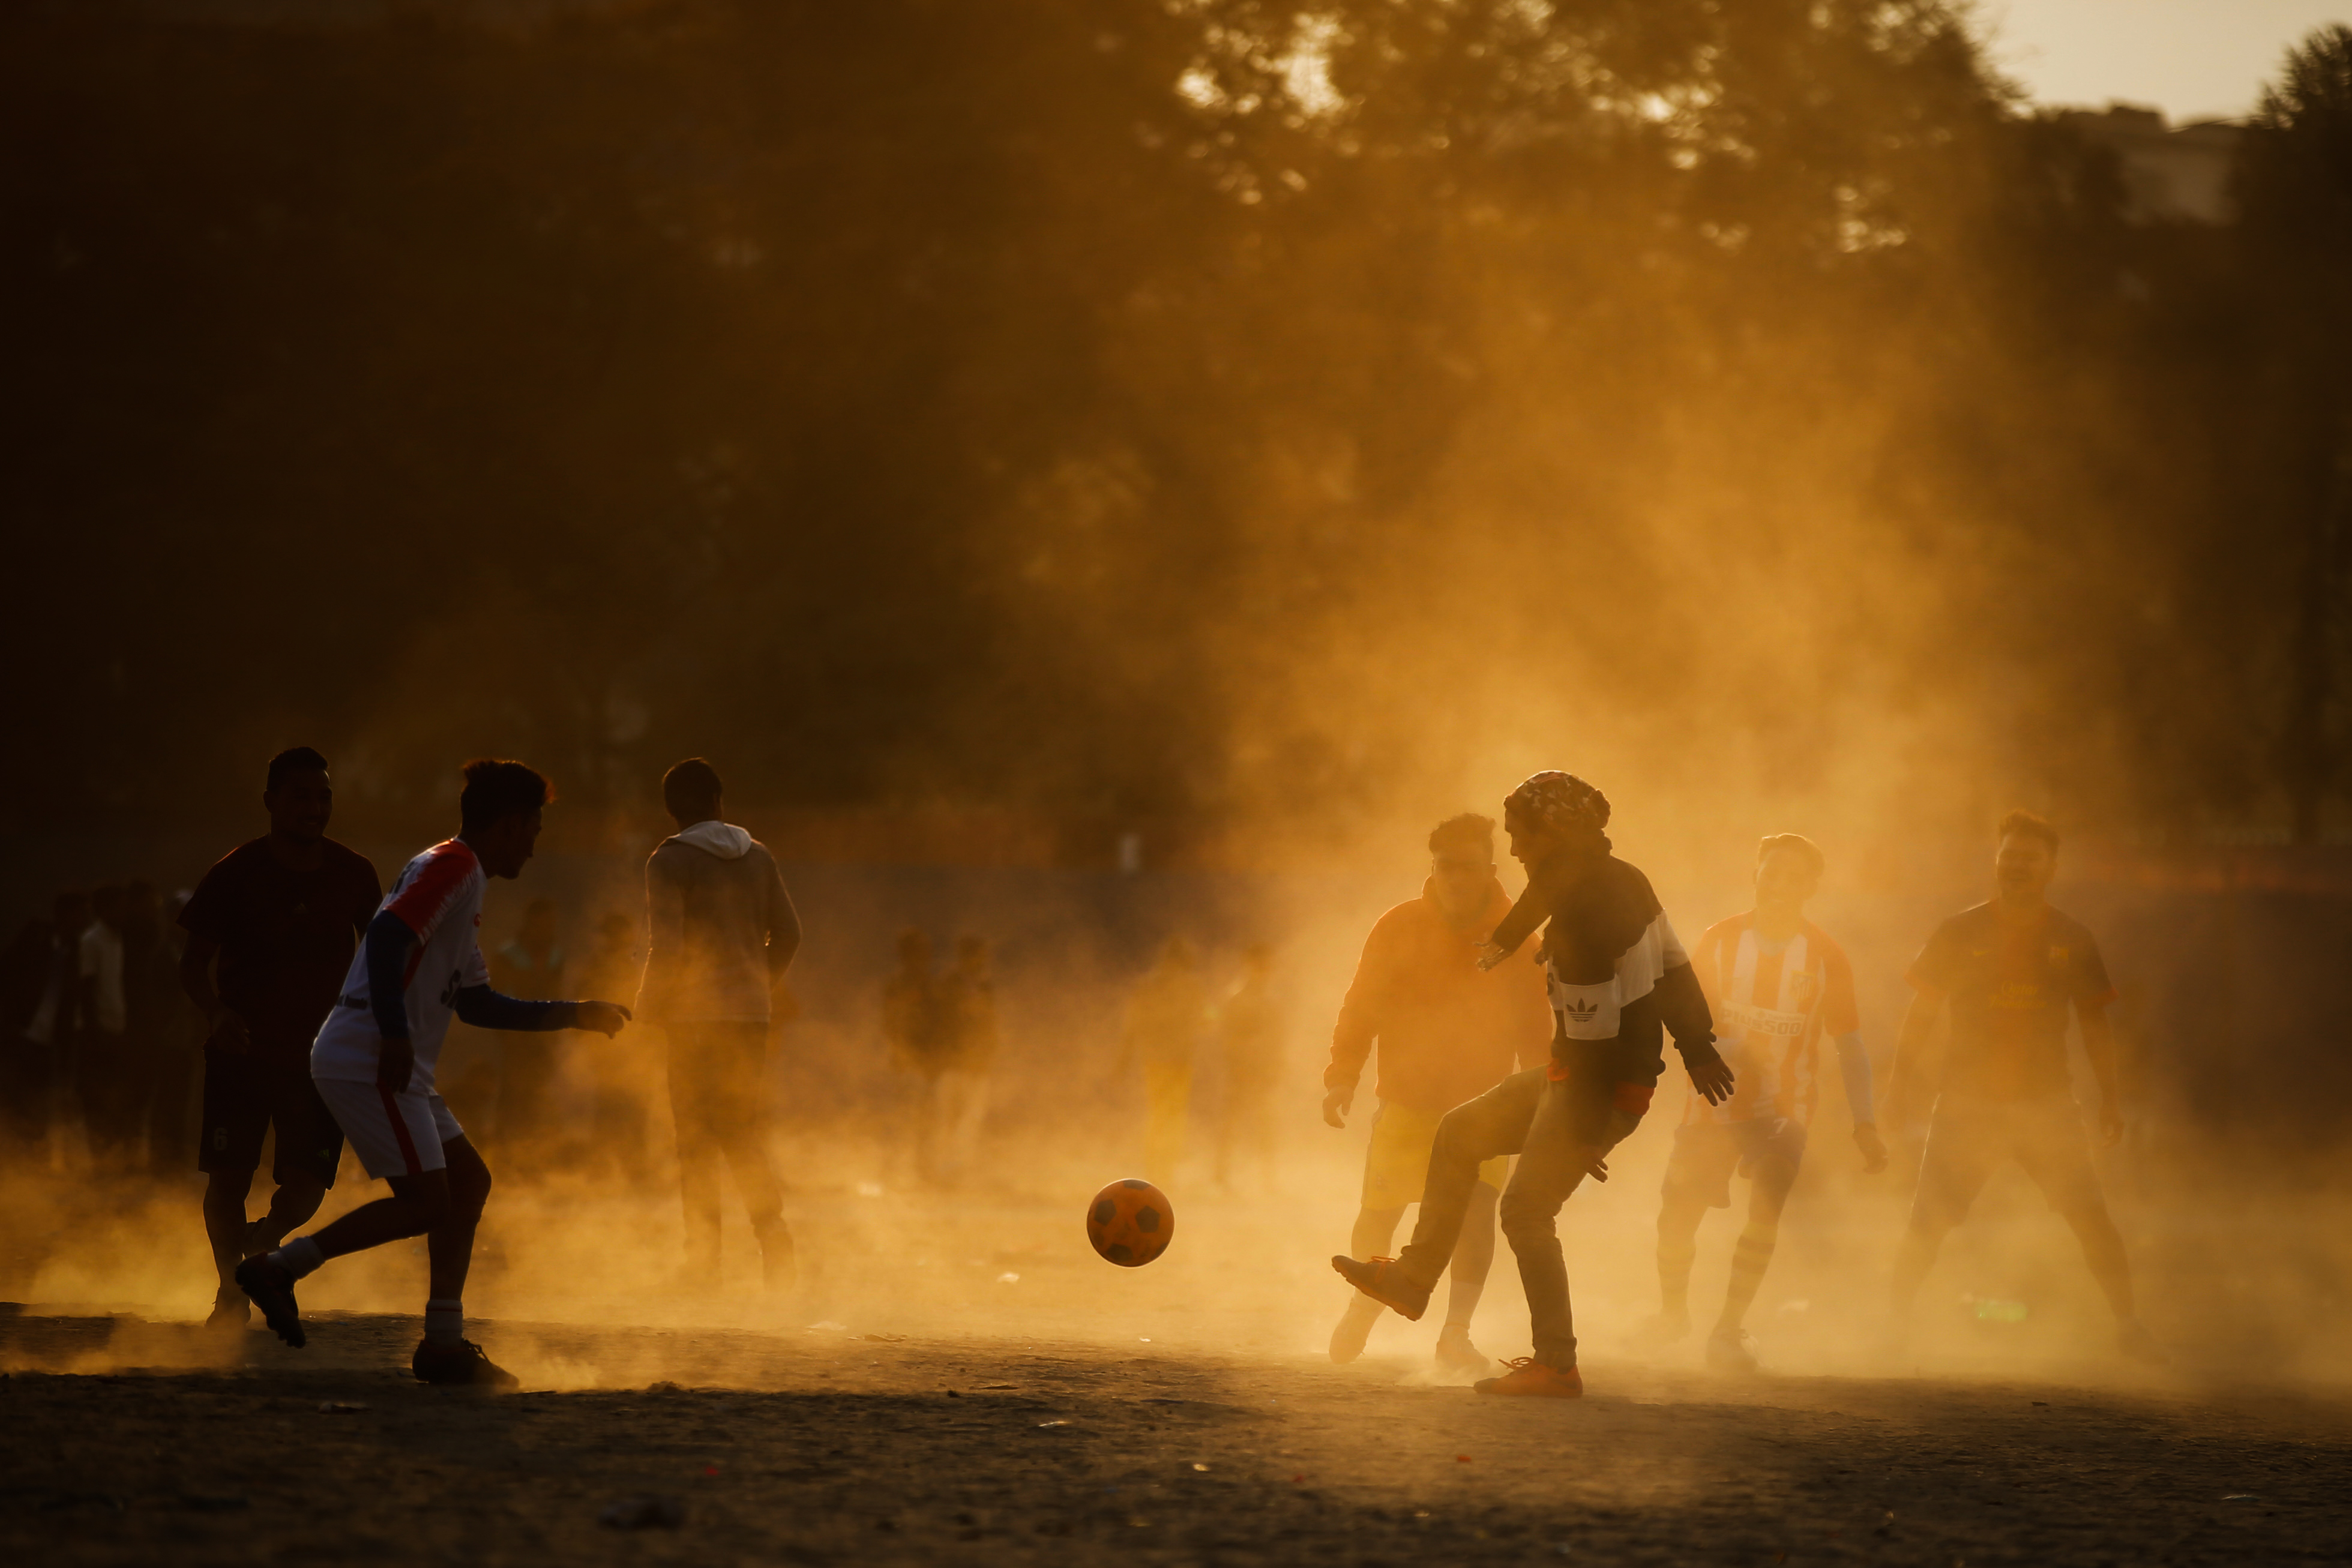 Youths play football on a dusty patch at Tundikhel ground, one of the few open spaces in Kathmandu, Nepal on Friday, January 04, 2019. Photo: Skanda Gautam/THT